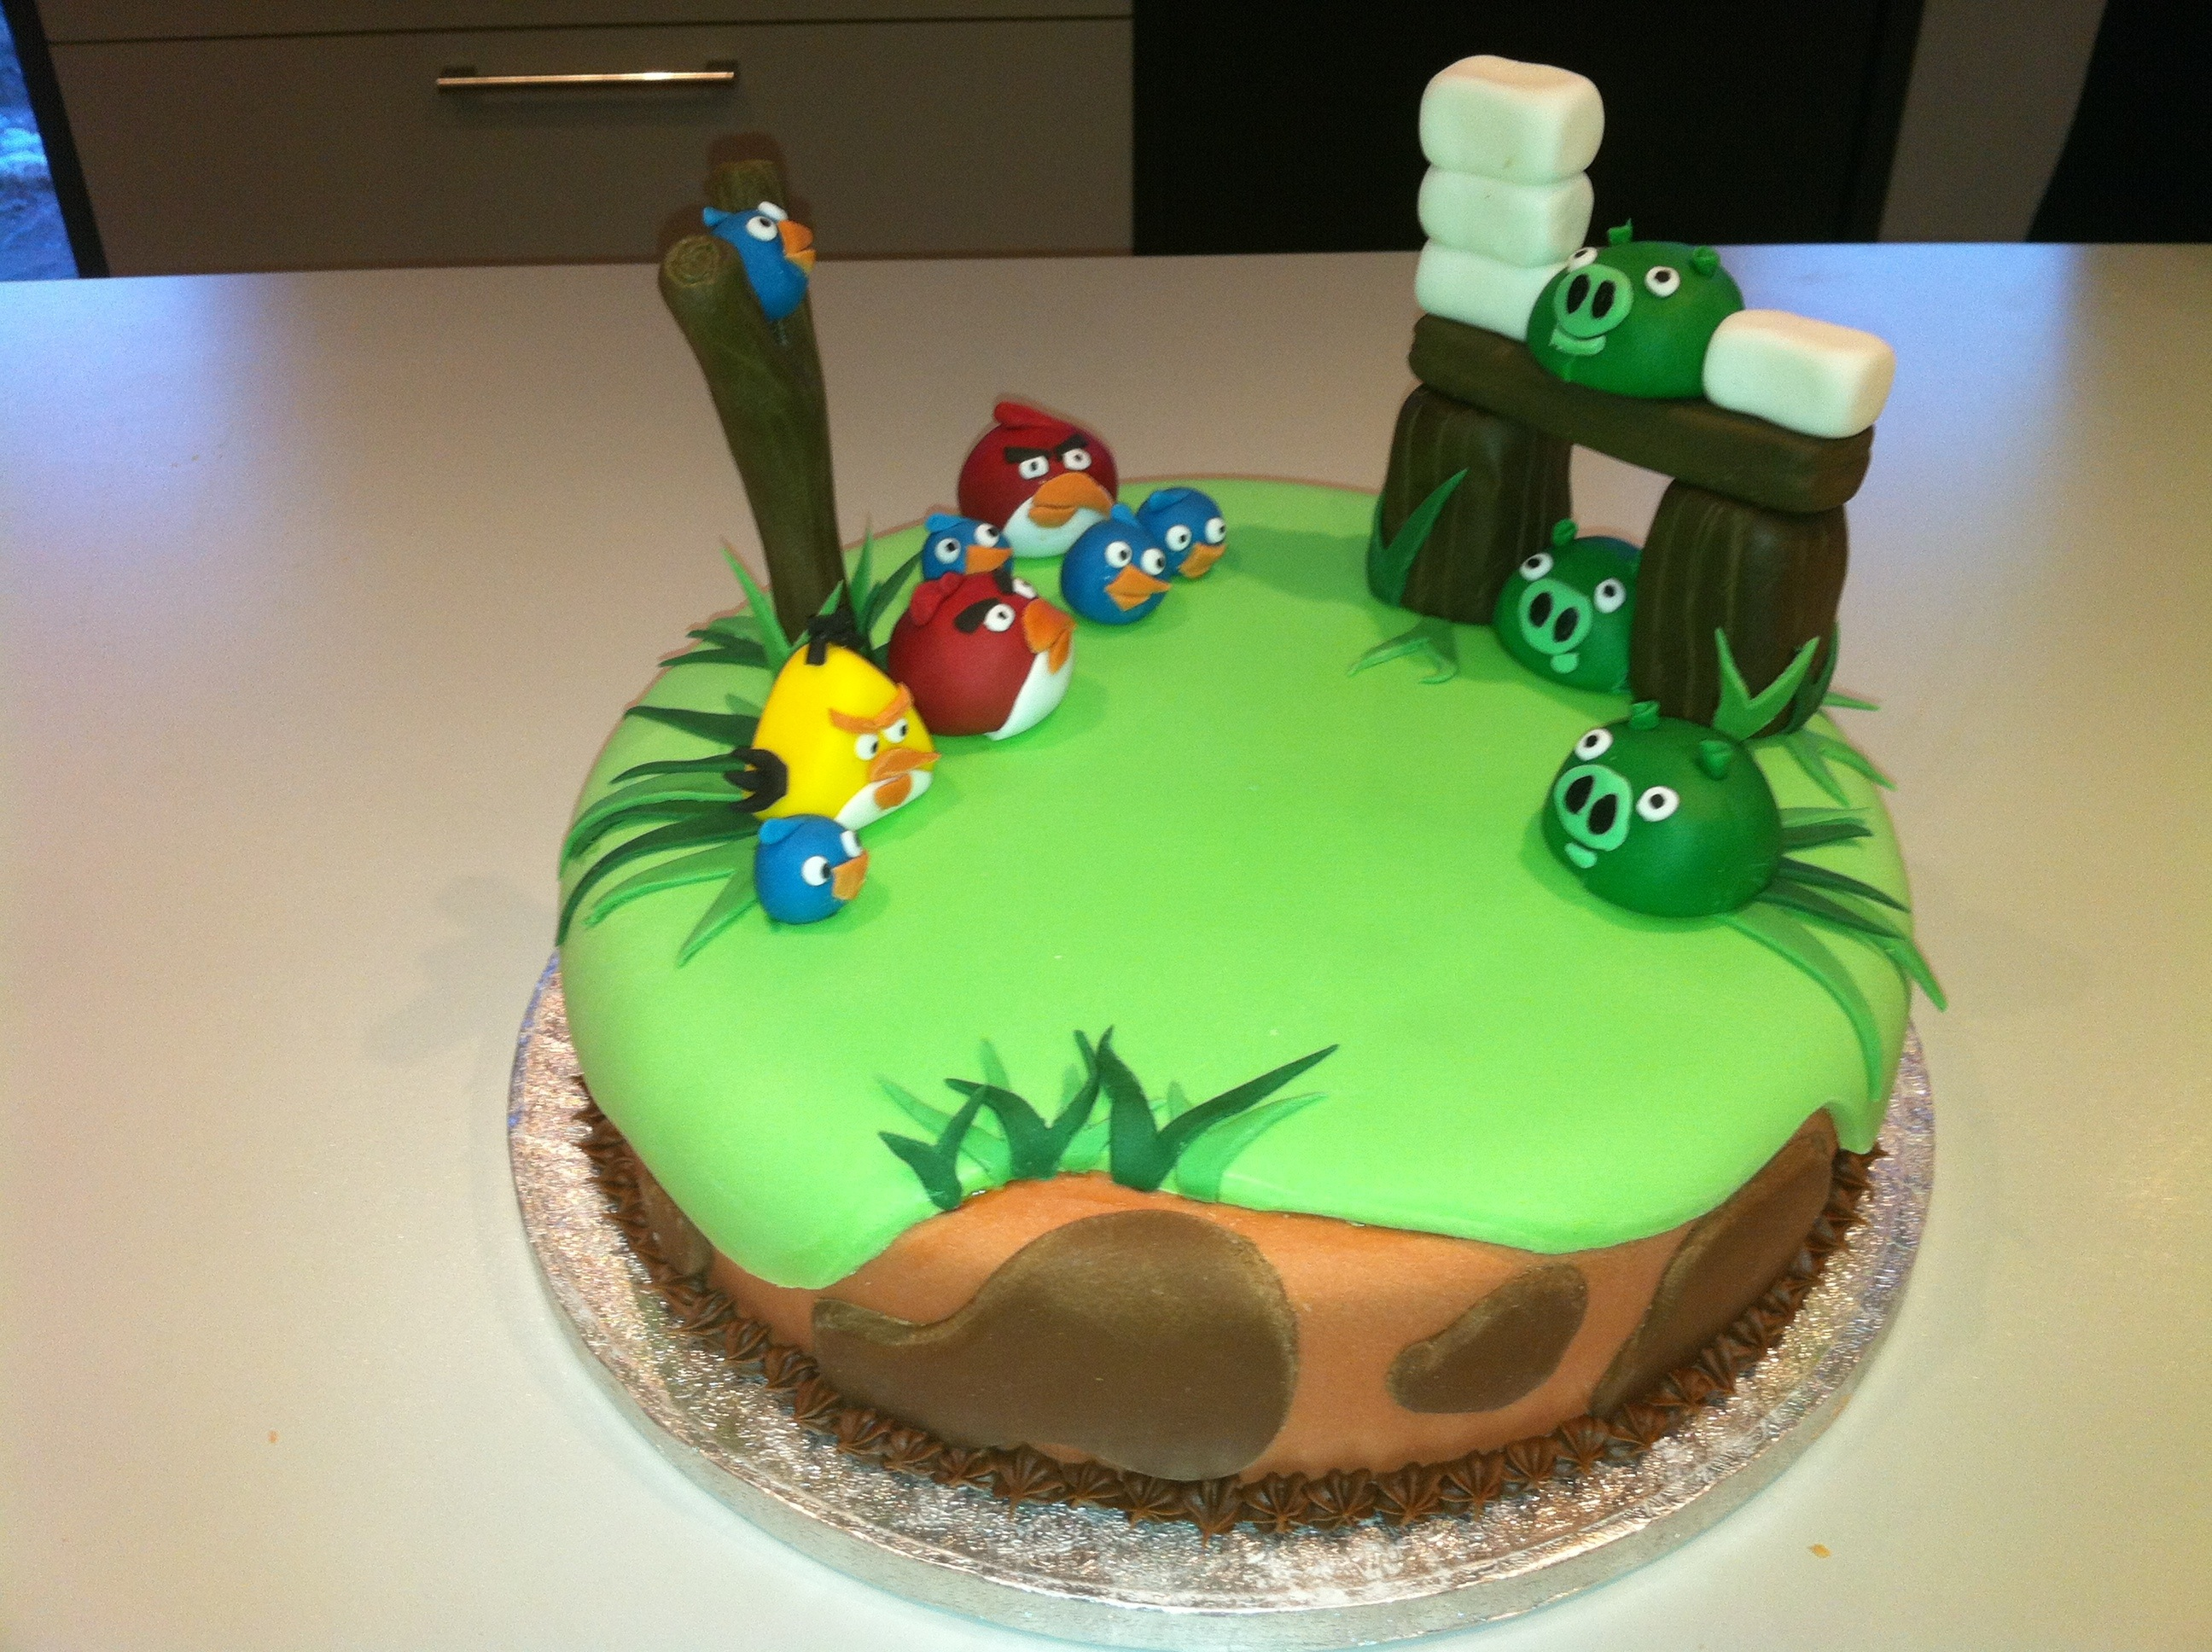 Images Of Angry Birds Cake : Angry birds cake   Cakes by Melissa